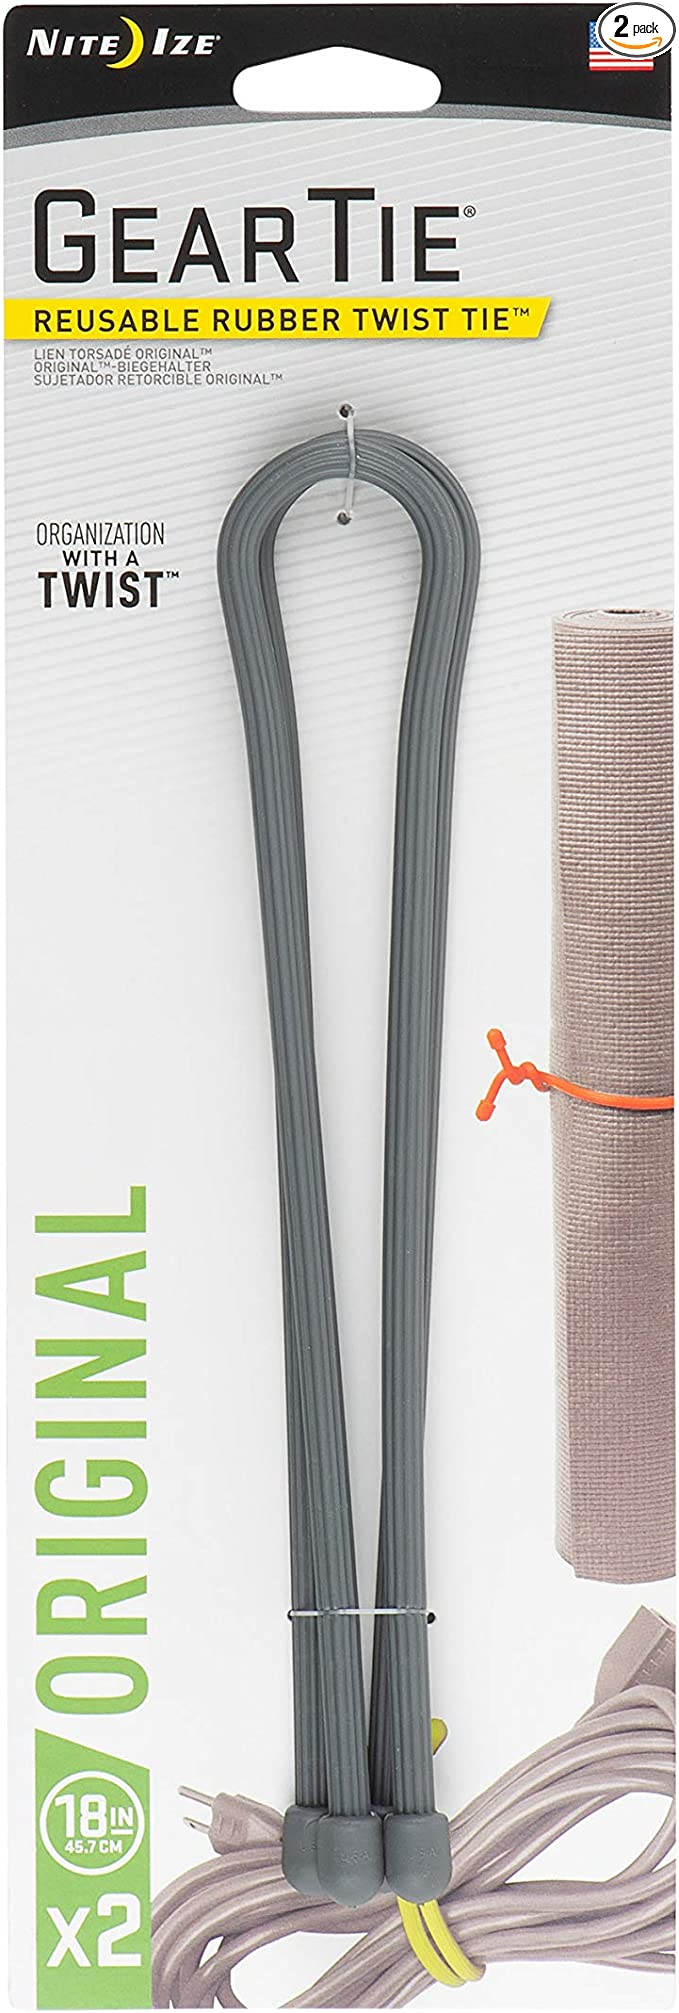 """Nite Ize Gear Tie Reusable Rubber Twist Tie 18/"""" 2-Pack Charcoal Gray 3-Pack"""